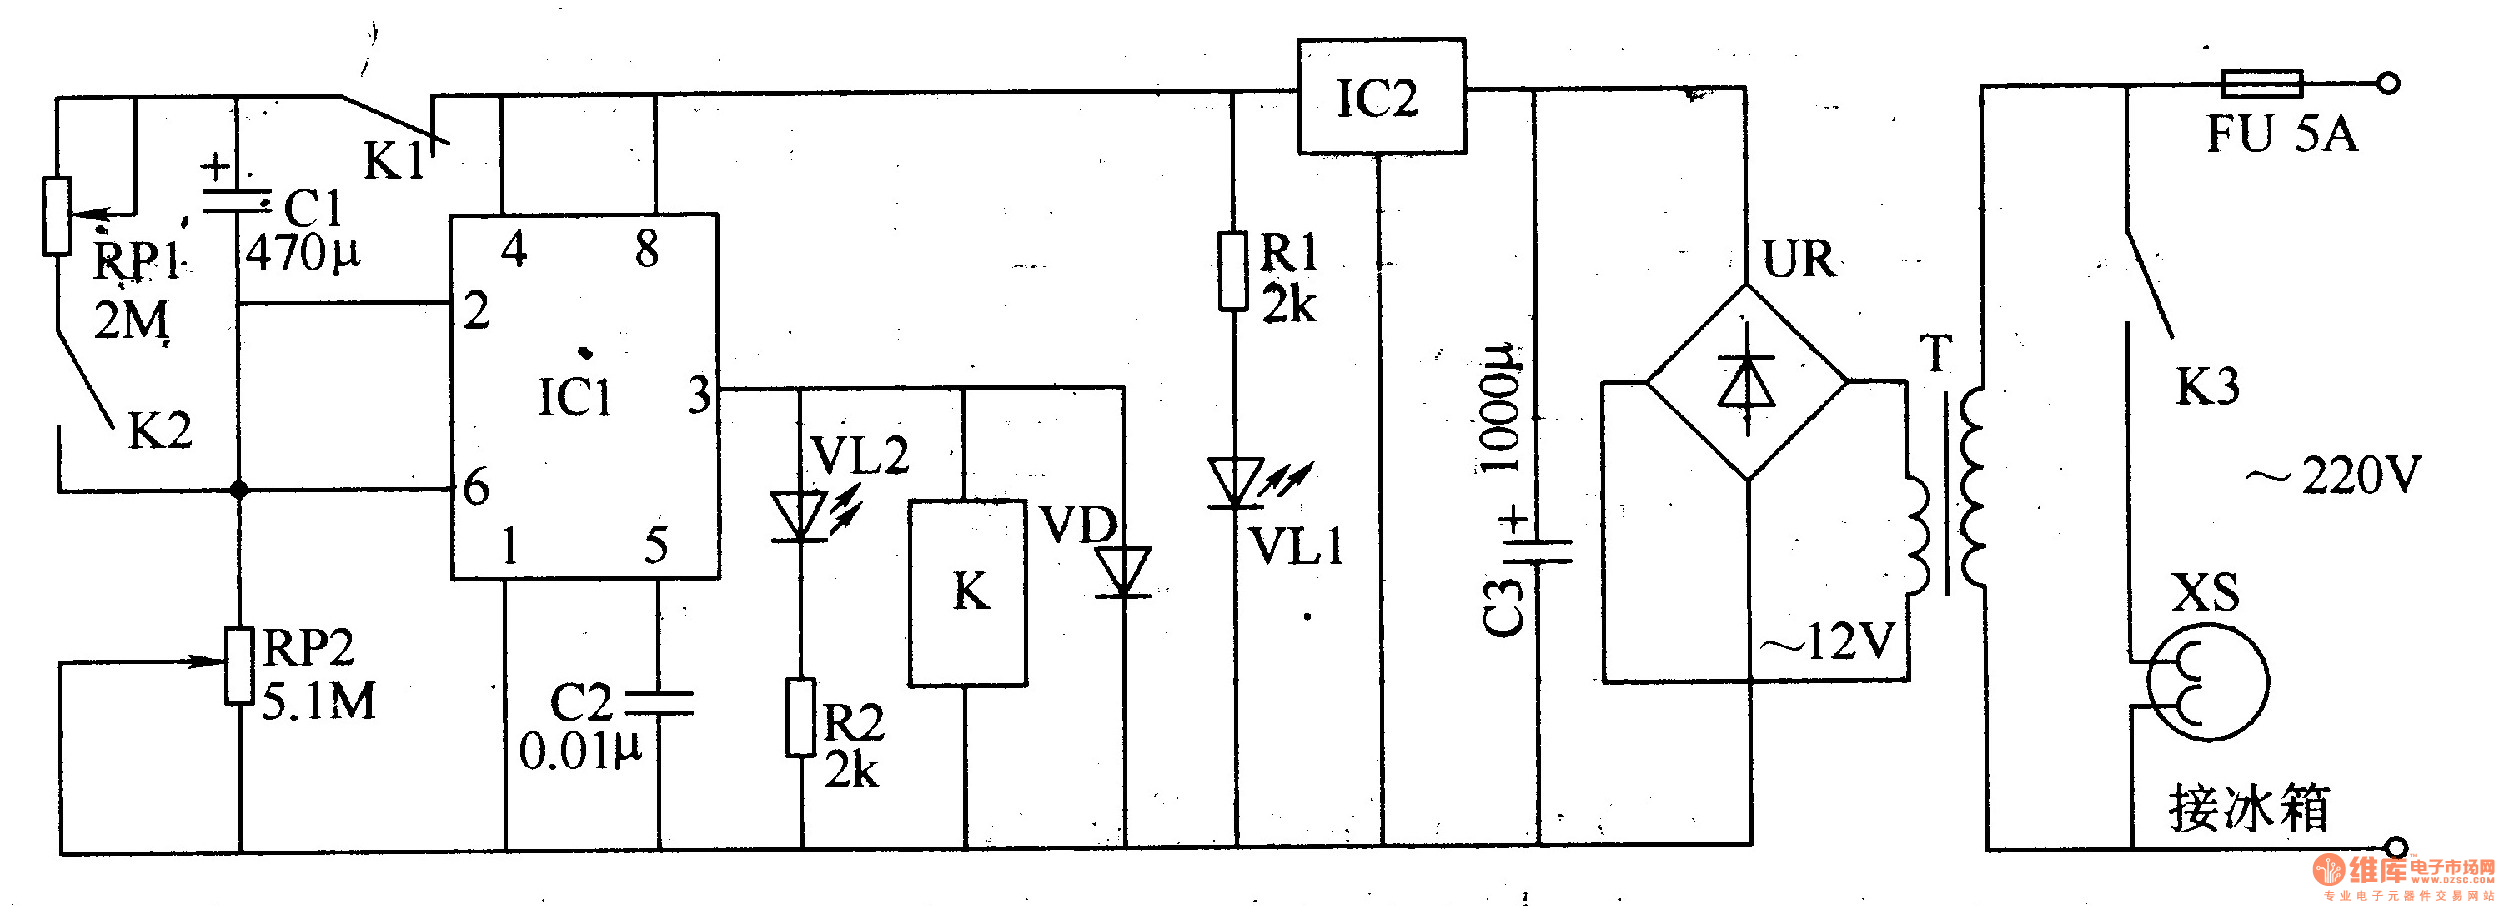 Cycle Timing Controller 2